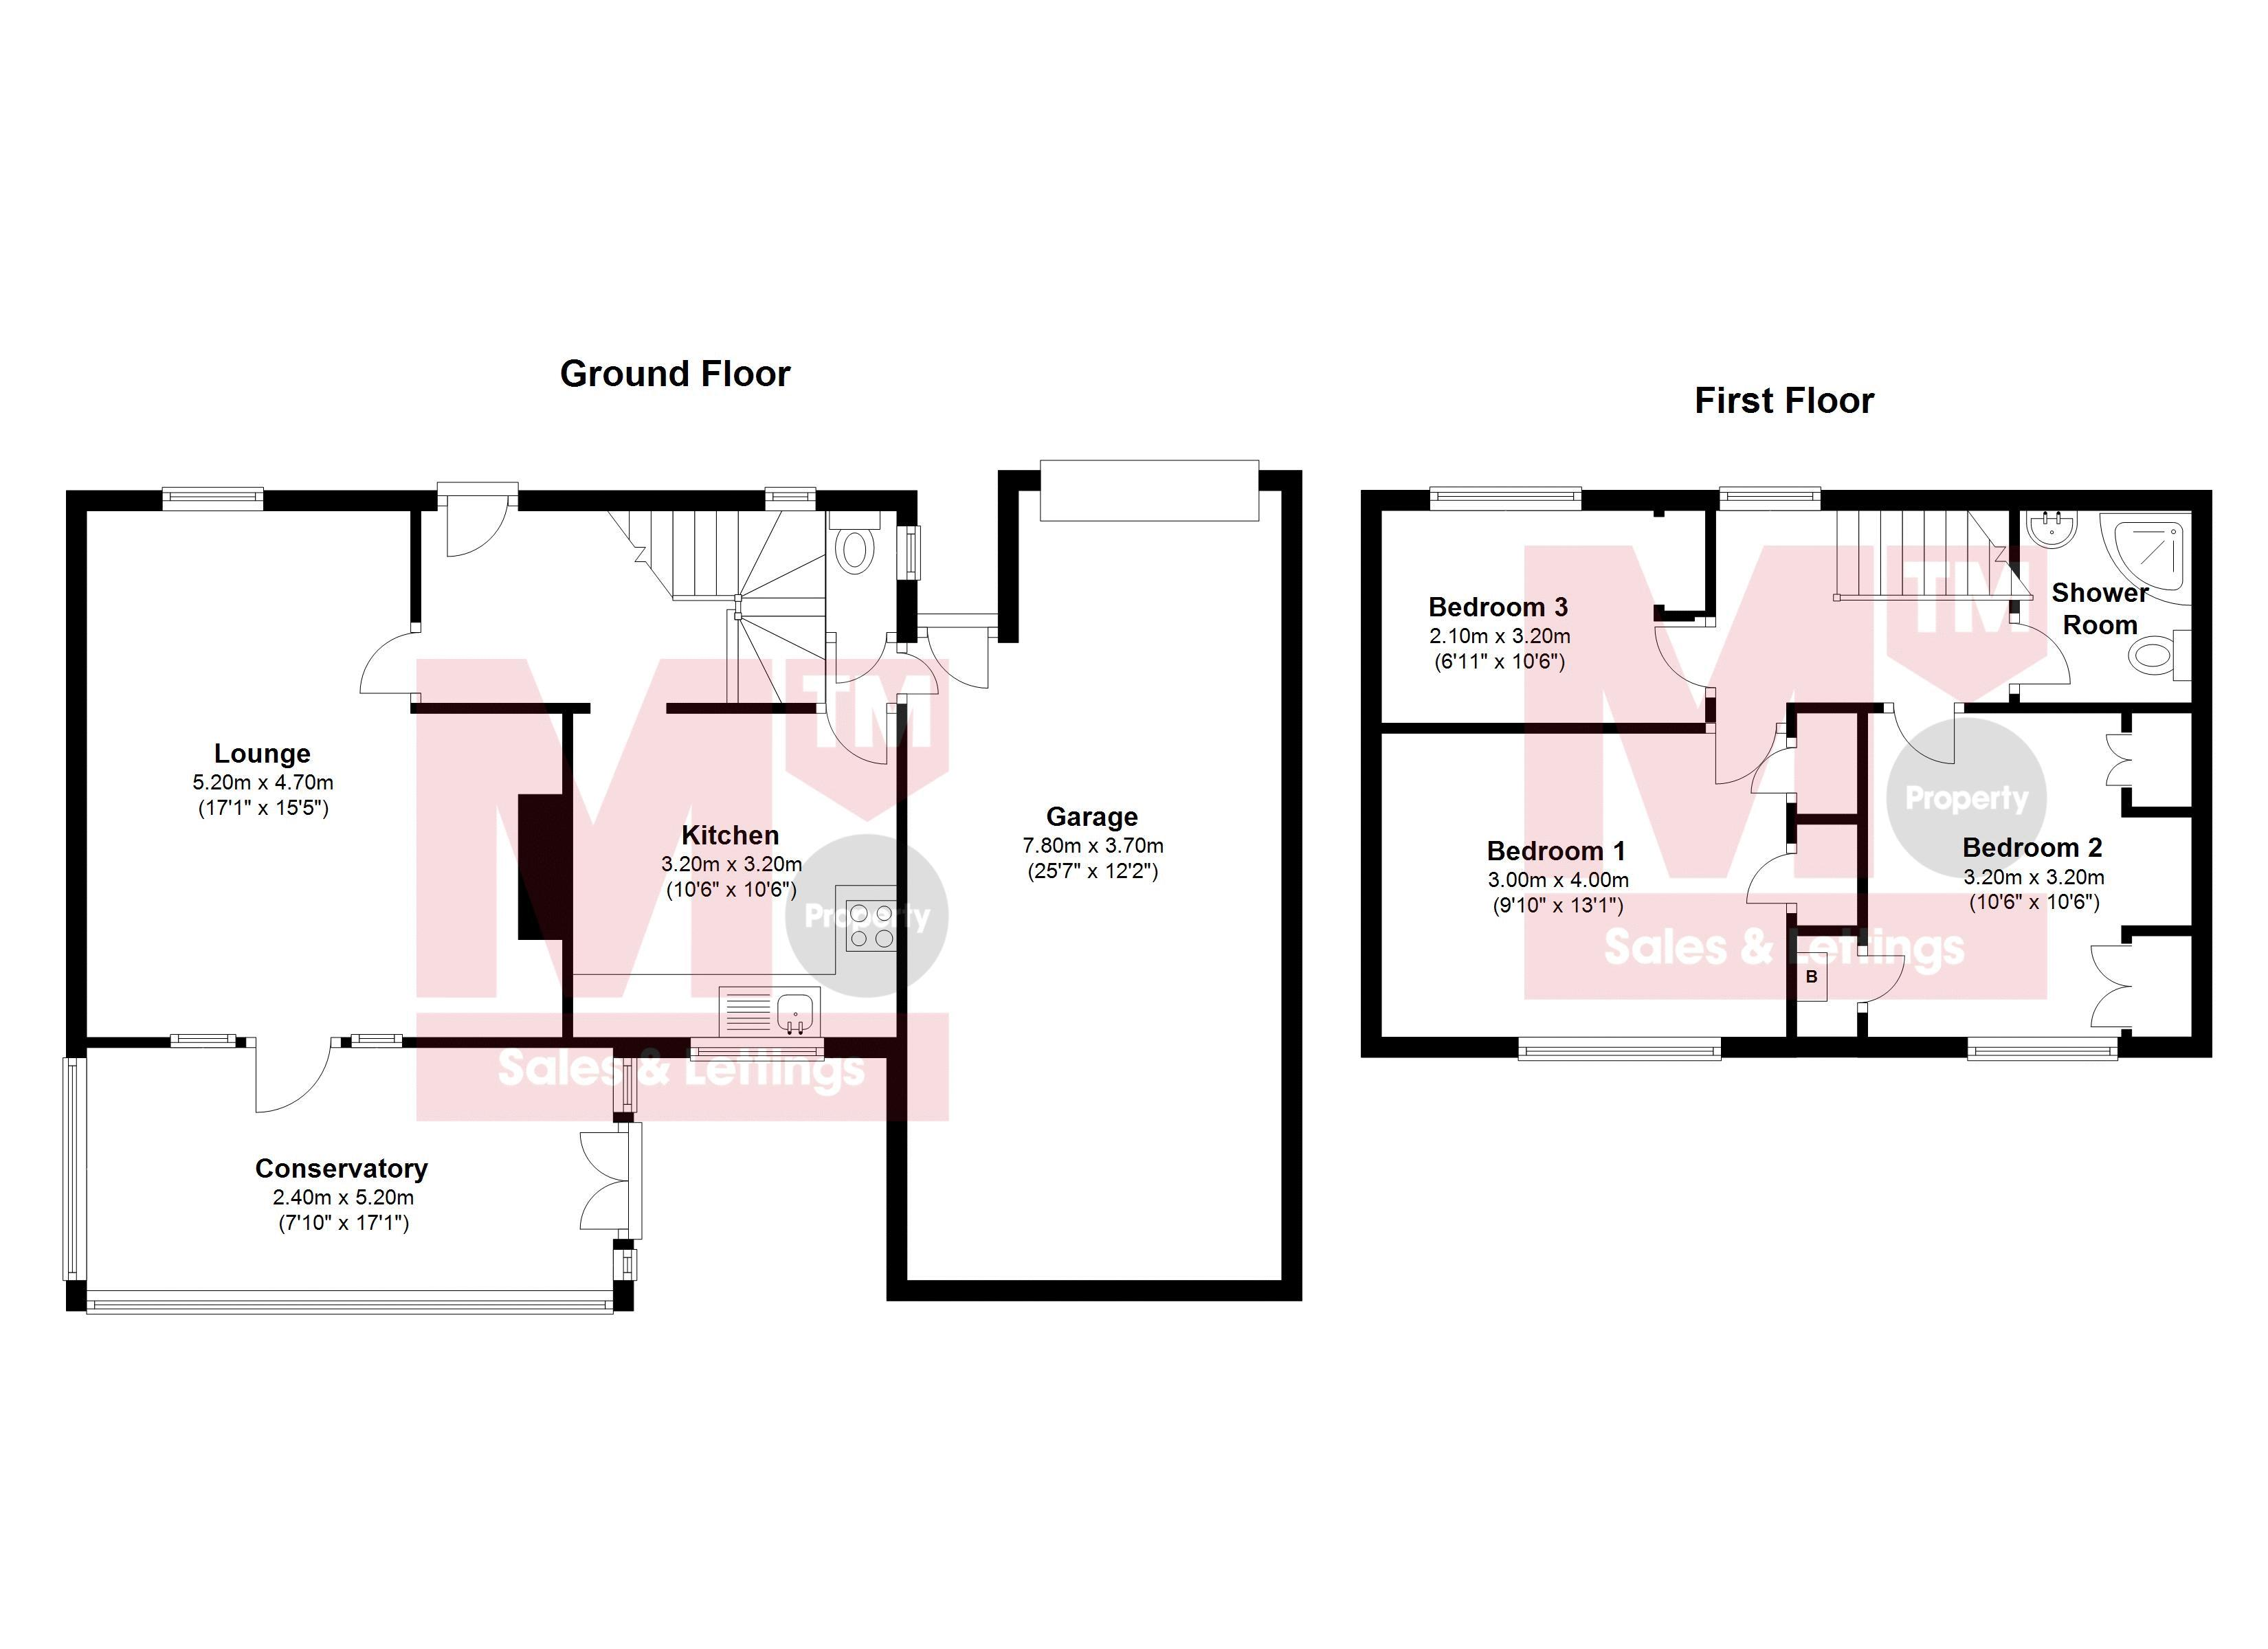 Floor plans for Heath Hill Avenue, Brighton property for sale in Bevendean, Brighton by Coapt